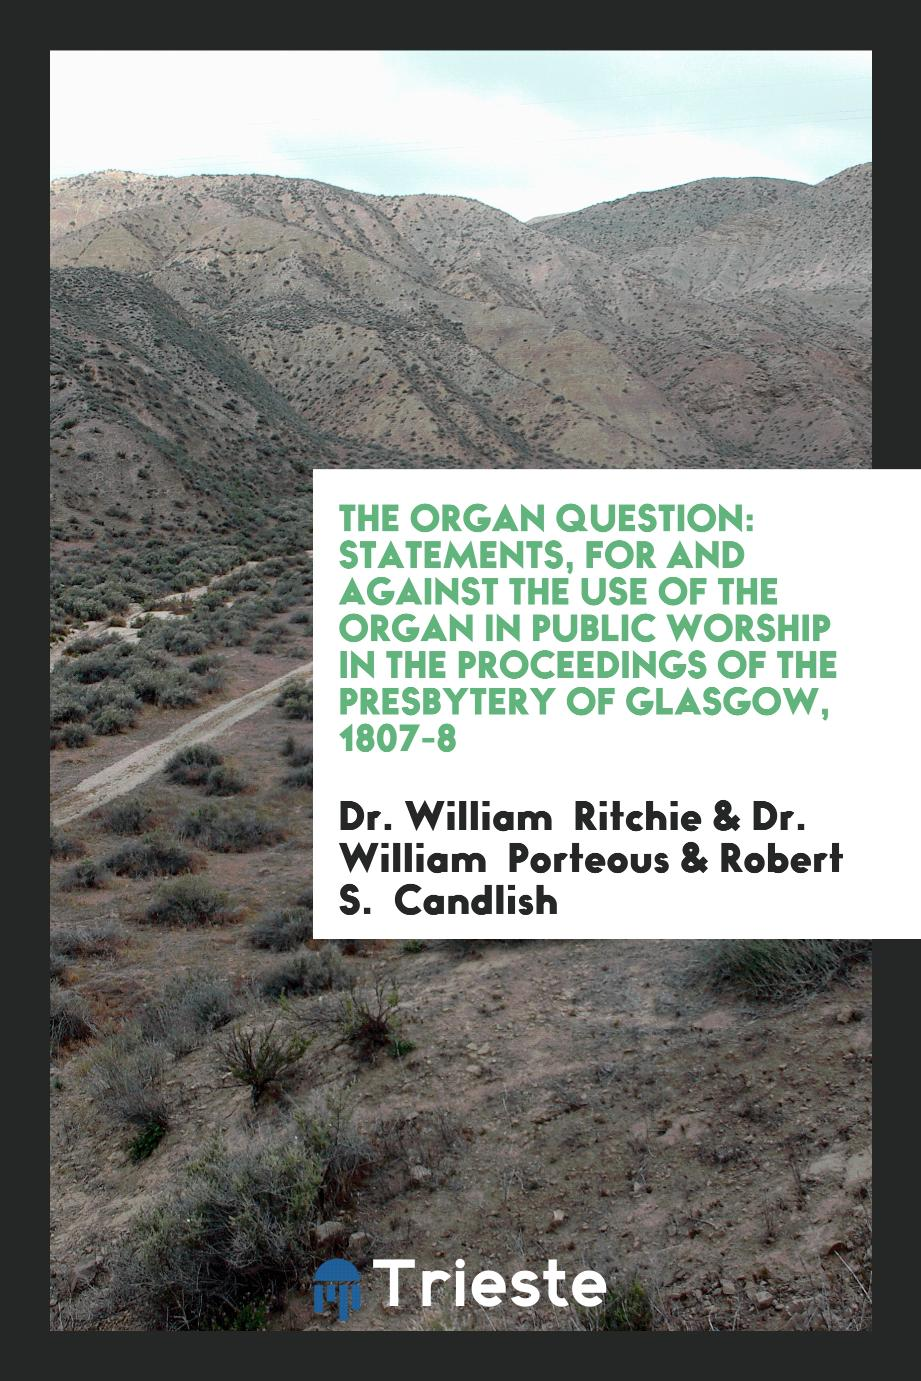 The Organ Question: Statements, for and Against the Use of the Organ in Public Worship in the Proceedings of the Presbytery of Glasgow, 1807-8